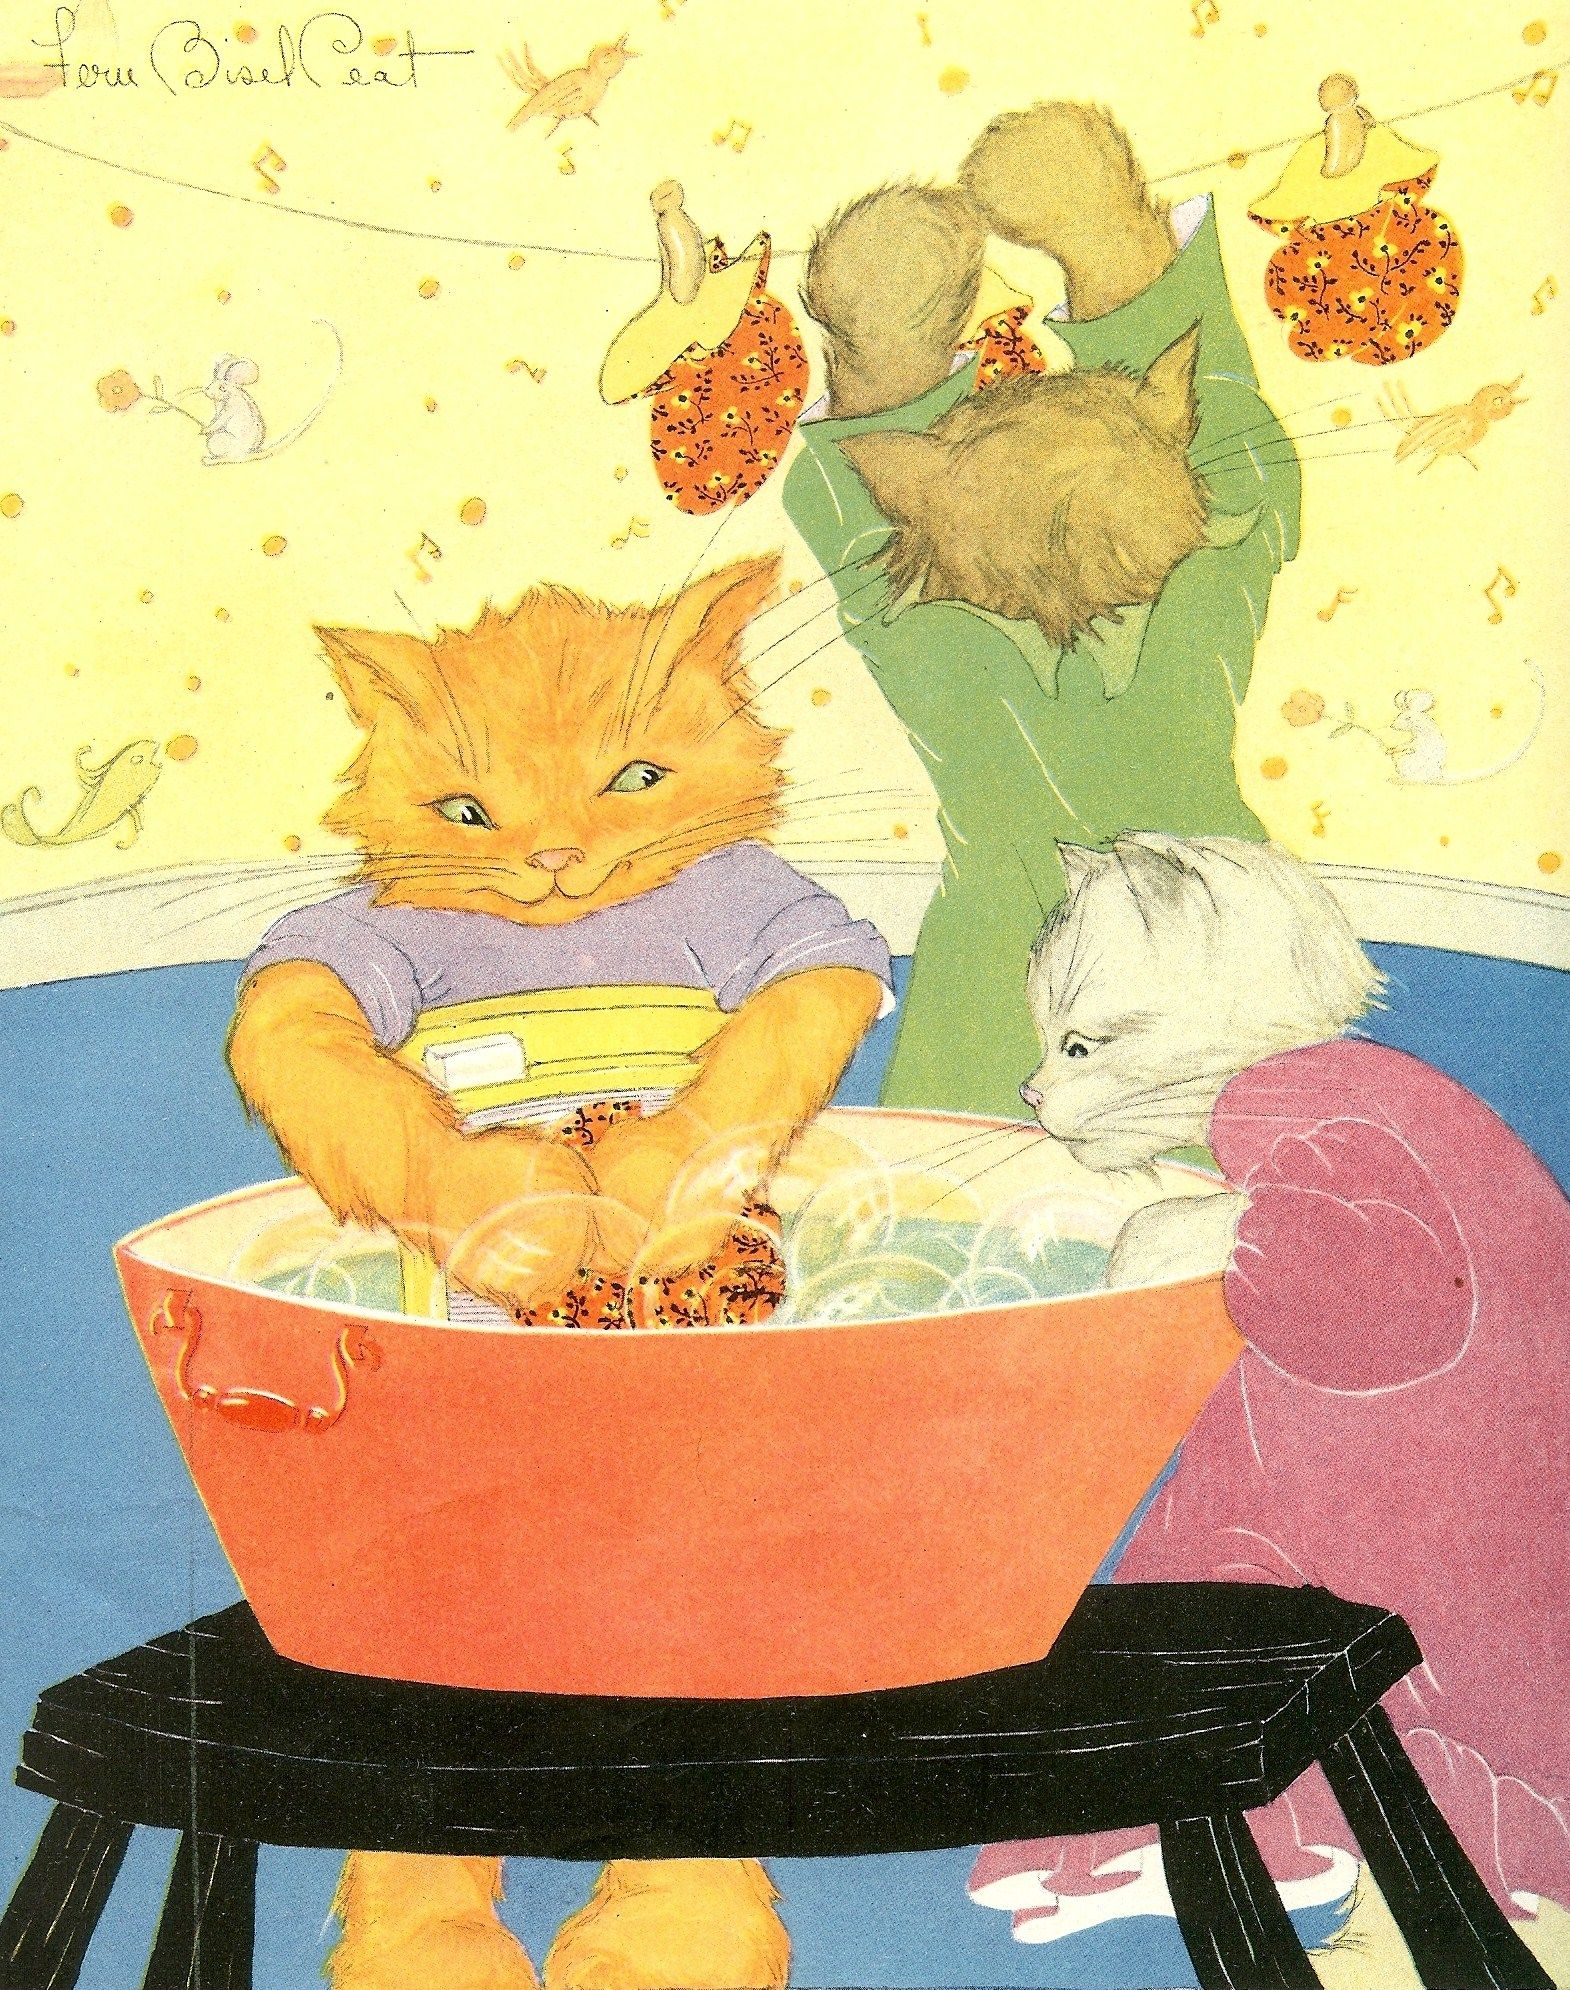 Pg9 What Soiled Your Mittens You Maughty Kittens Then They Began To Sigh Little Kittens Cat Art Vintage Artwork